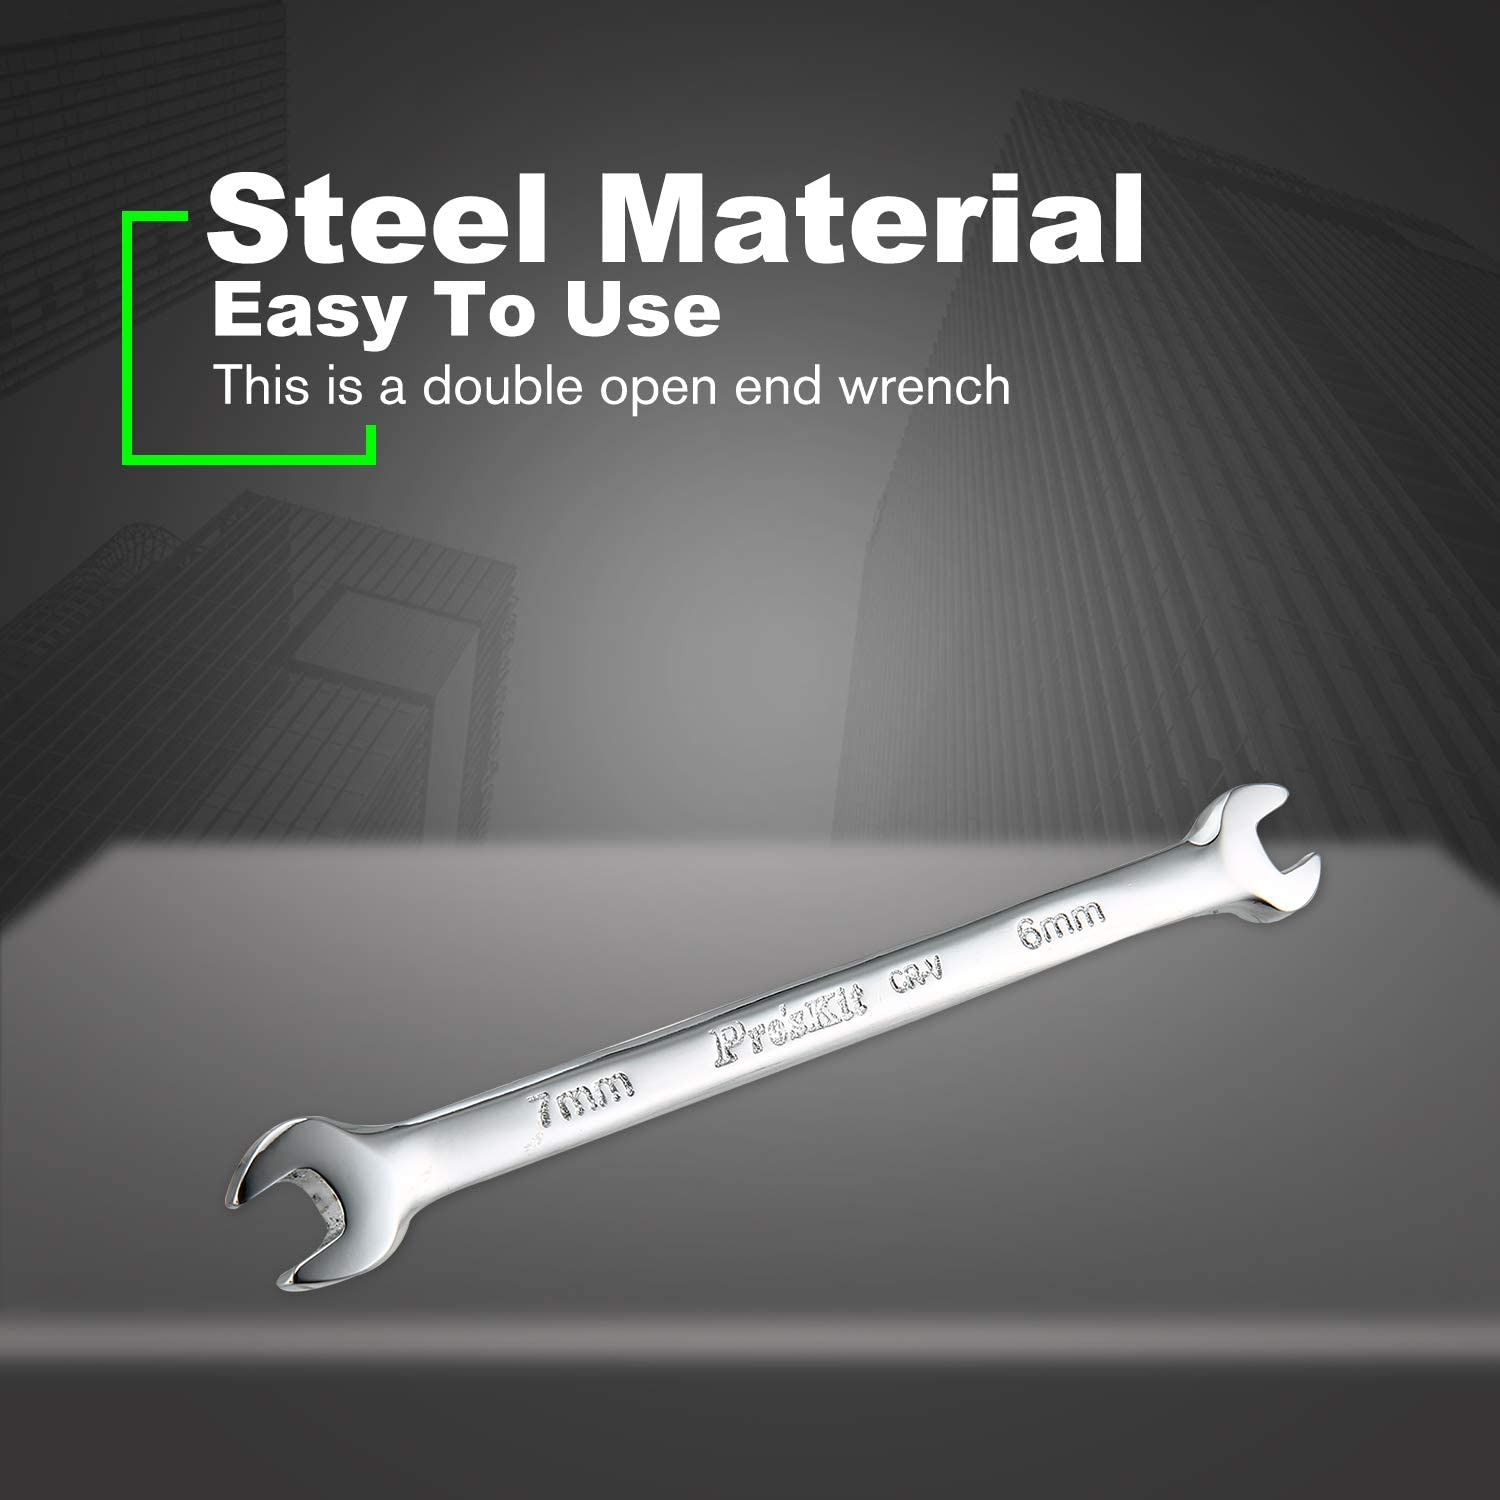 Wrench Proskit 7mm//6mm Mirror Polished Double-headed Double Open End Wrench Universal Spanner Steel Hand Tools